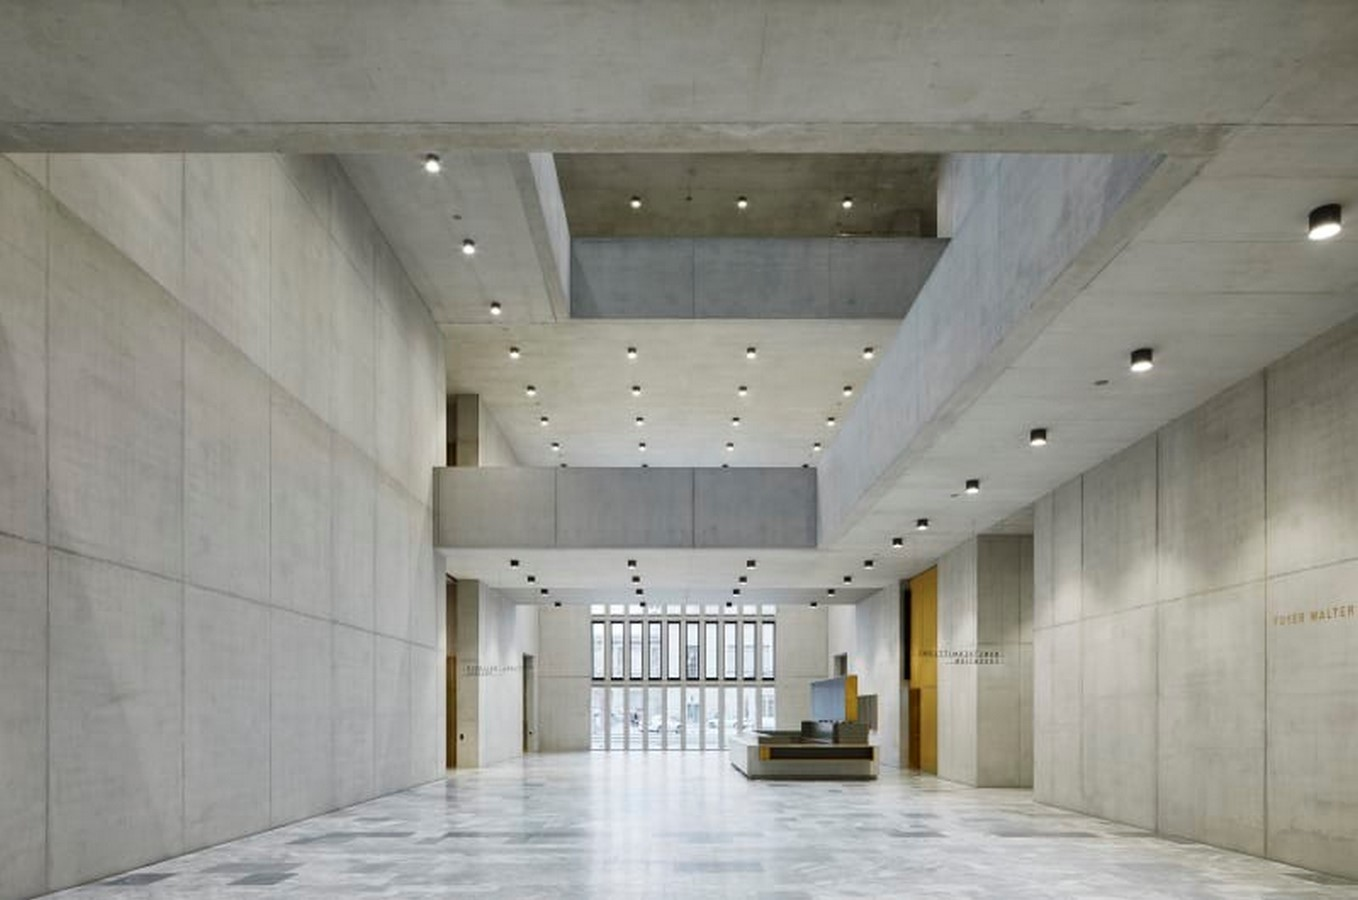 10 examples of recycled concrete - Sheet13